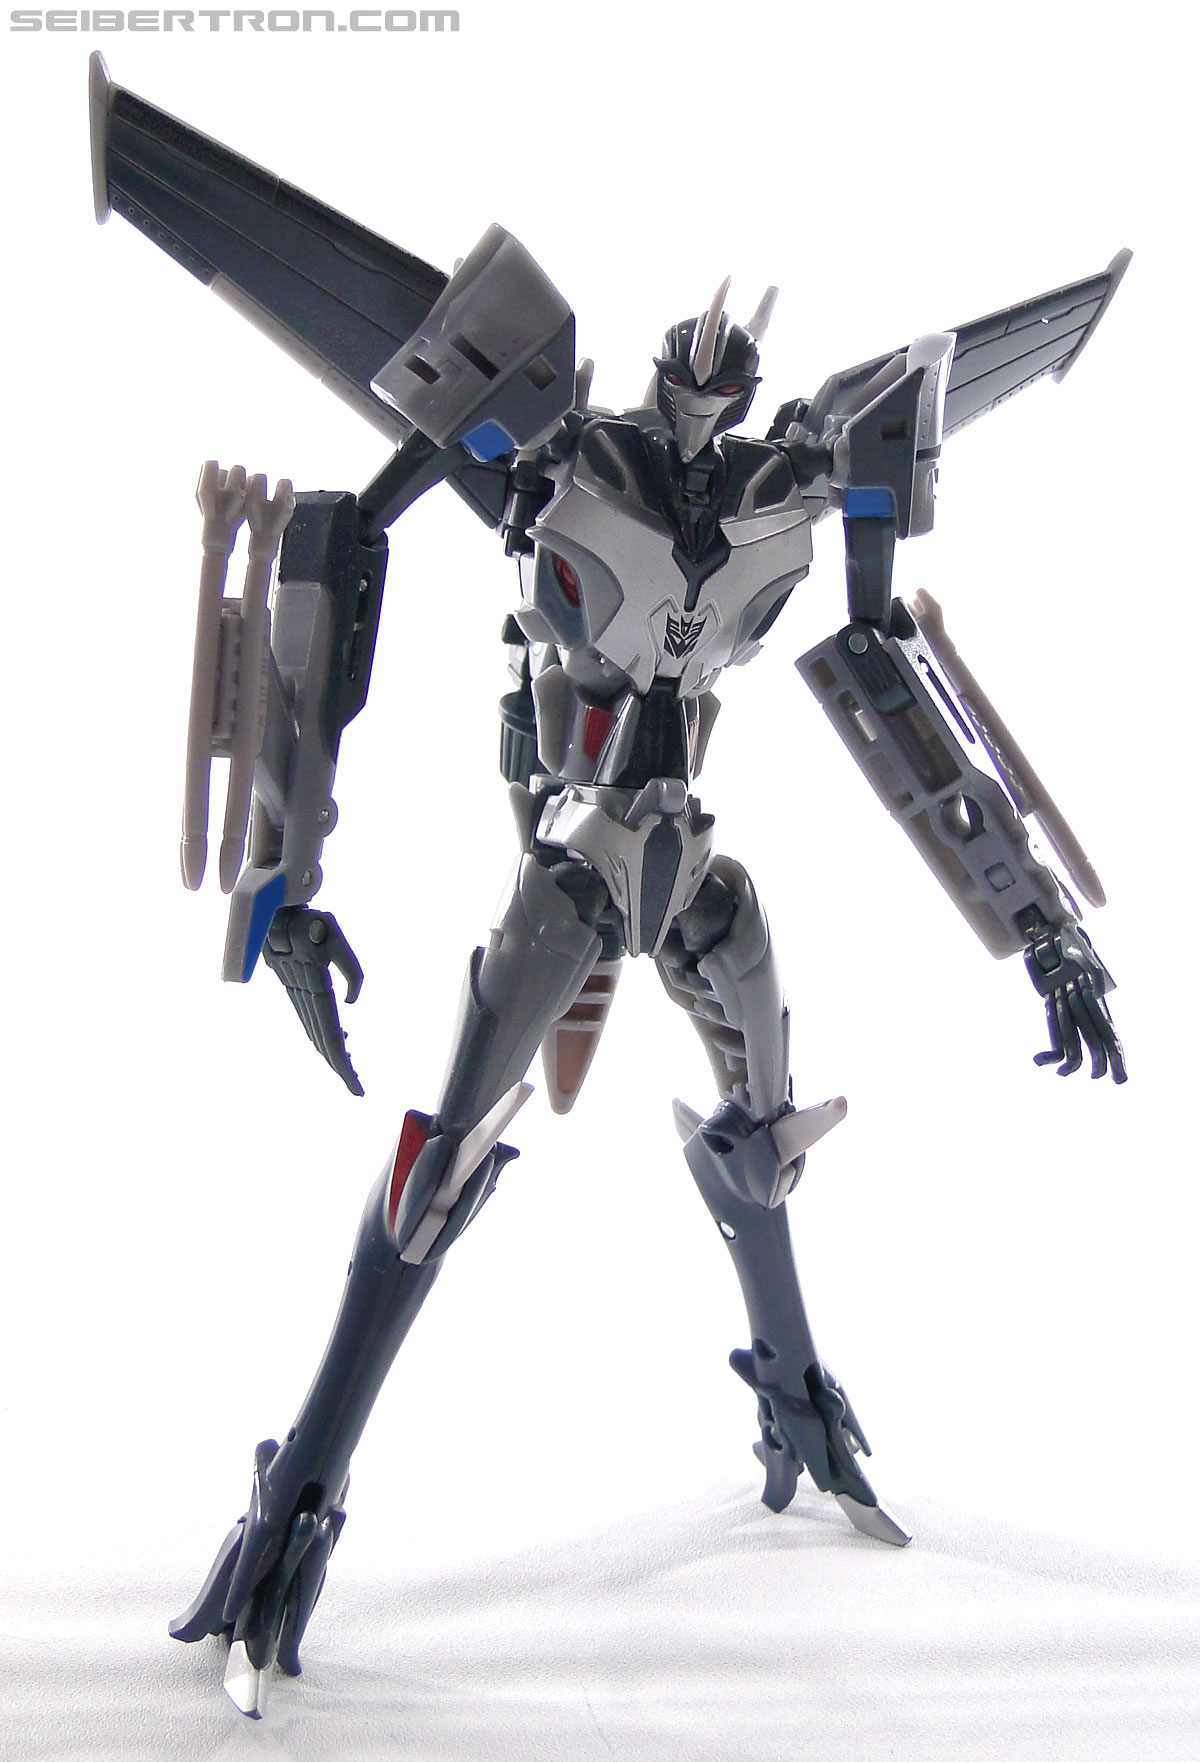 Transformers Prime: First Edition Starscream (Image #123 of 136)